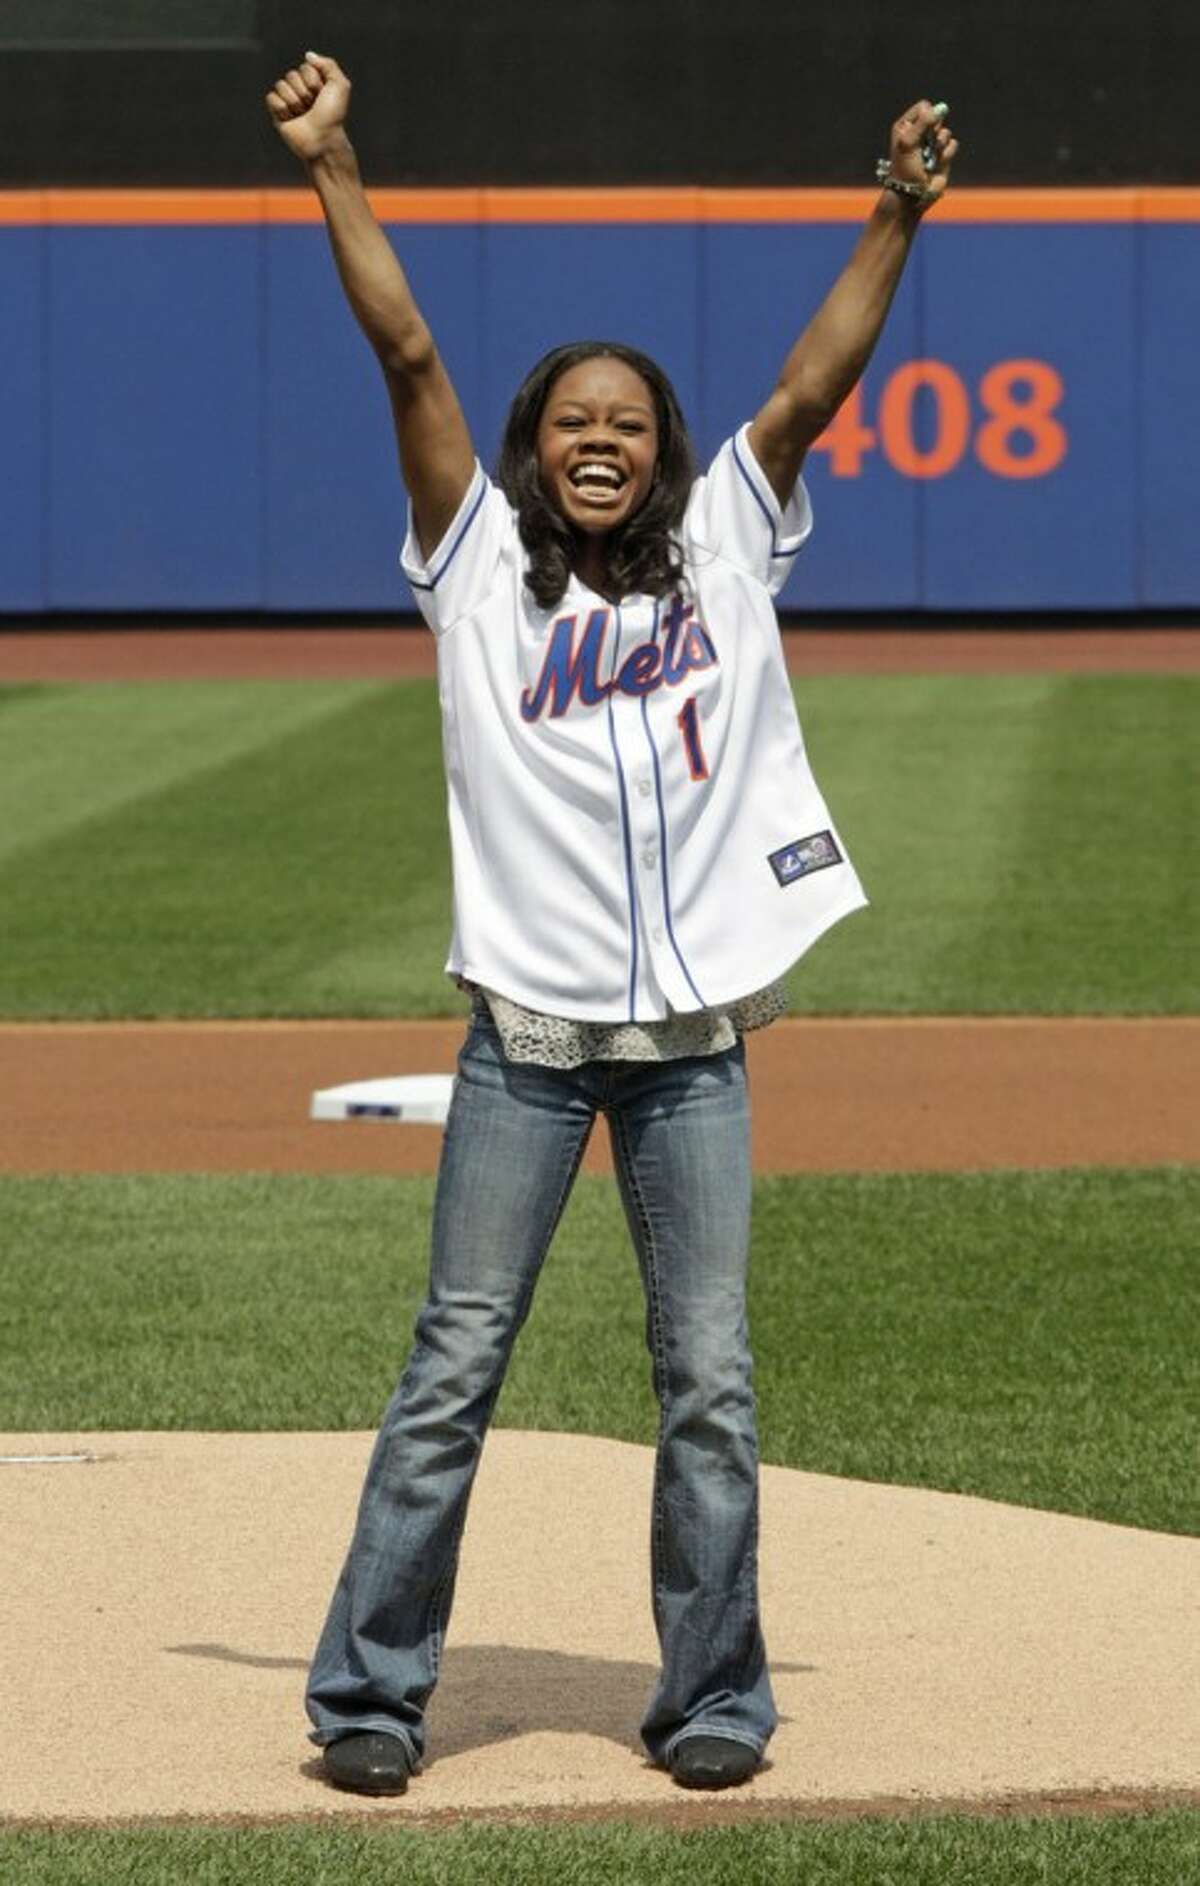 Olympic gold medal gymnast Gabrielle Douglas reacts after throwing the ceremonial first pitch before a baseball game between the New York Mets and the Colorado Rockies, Thursday, Aug. 23, 2012, in New York. (AP Photo/Frank Franklin II)